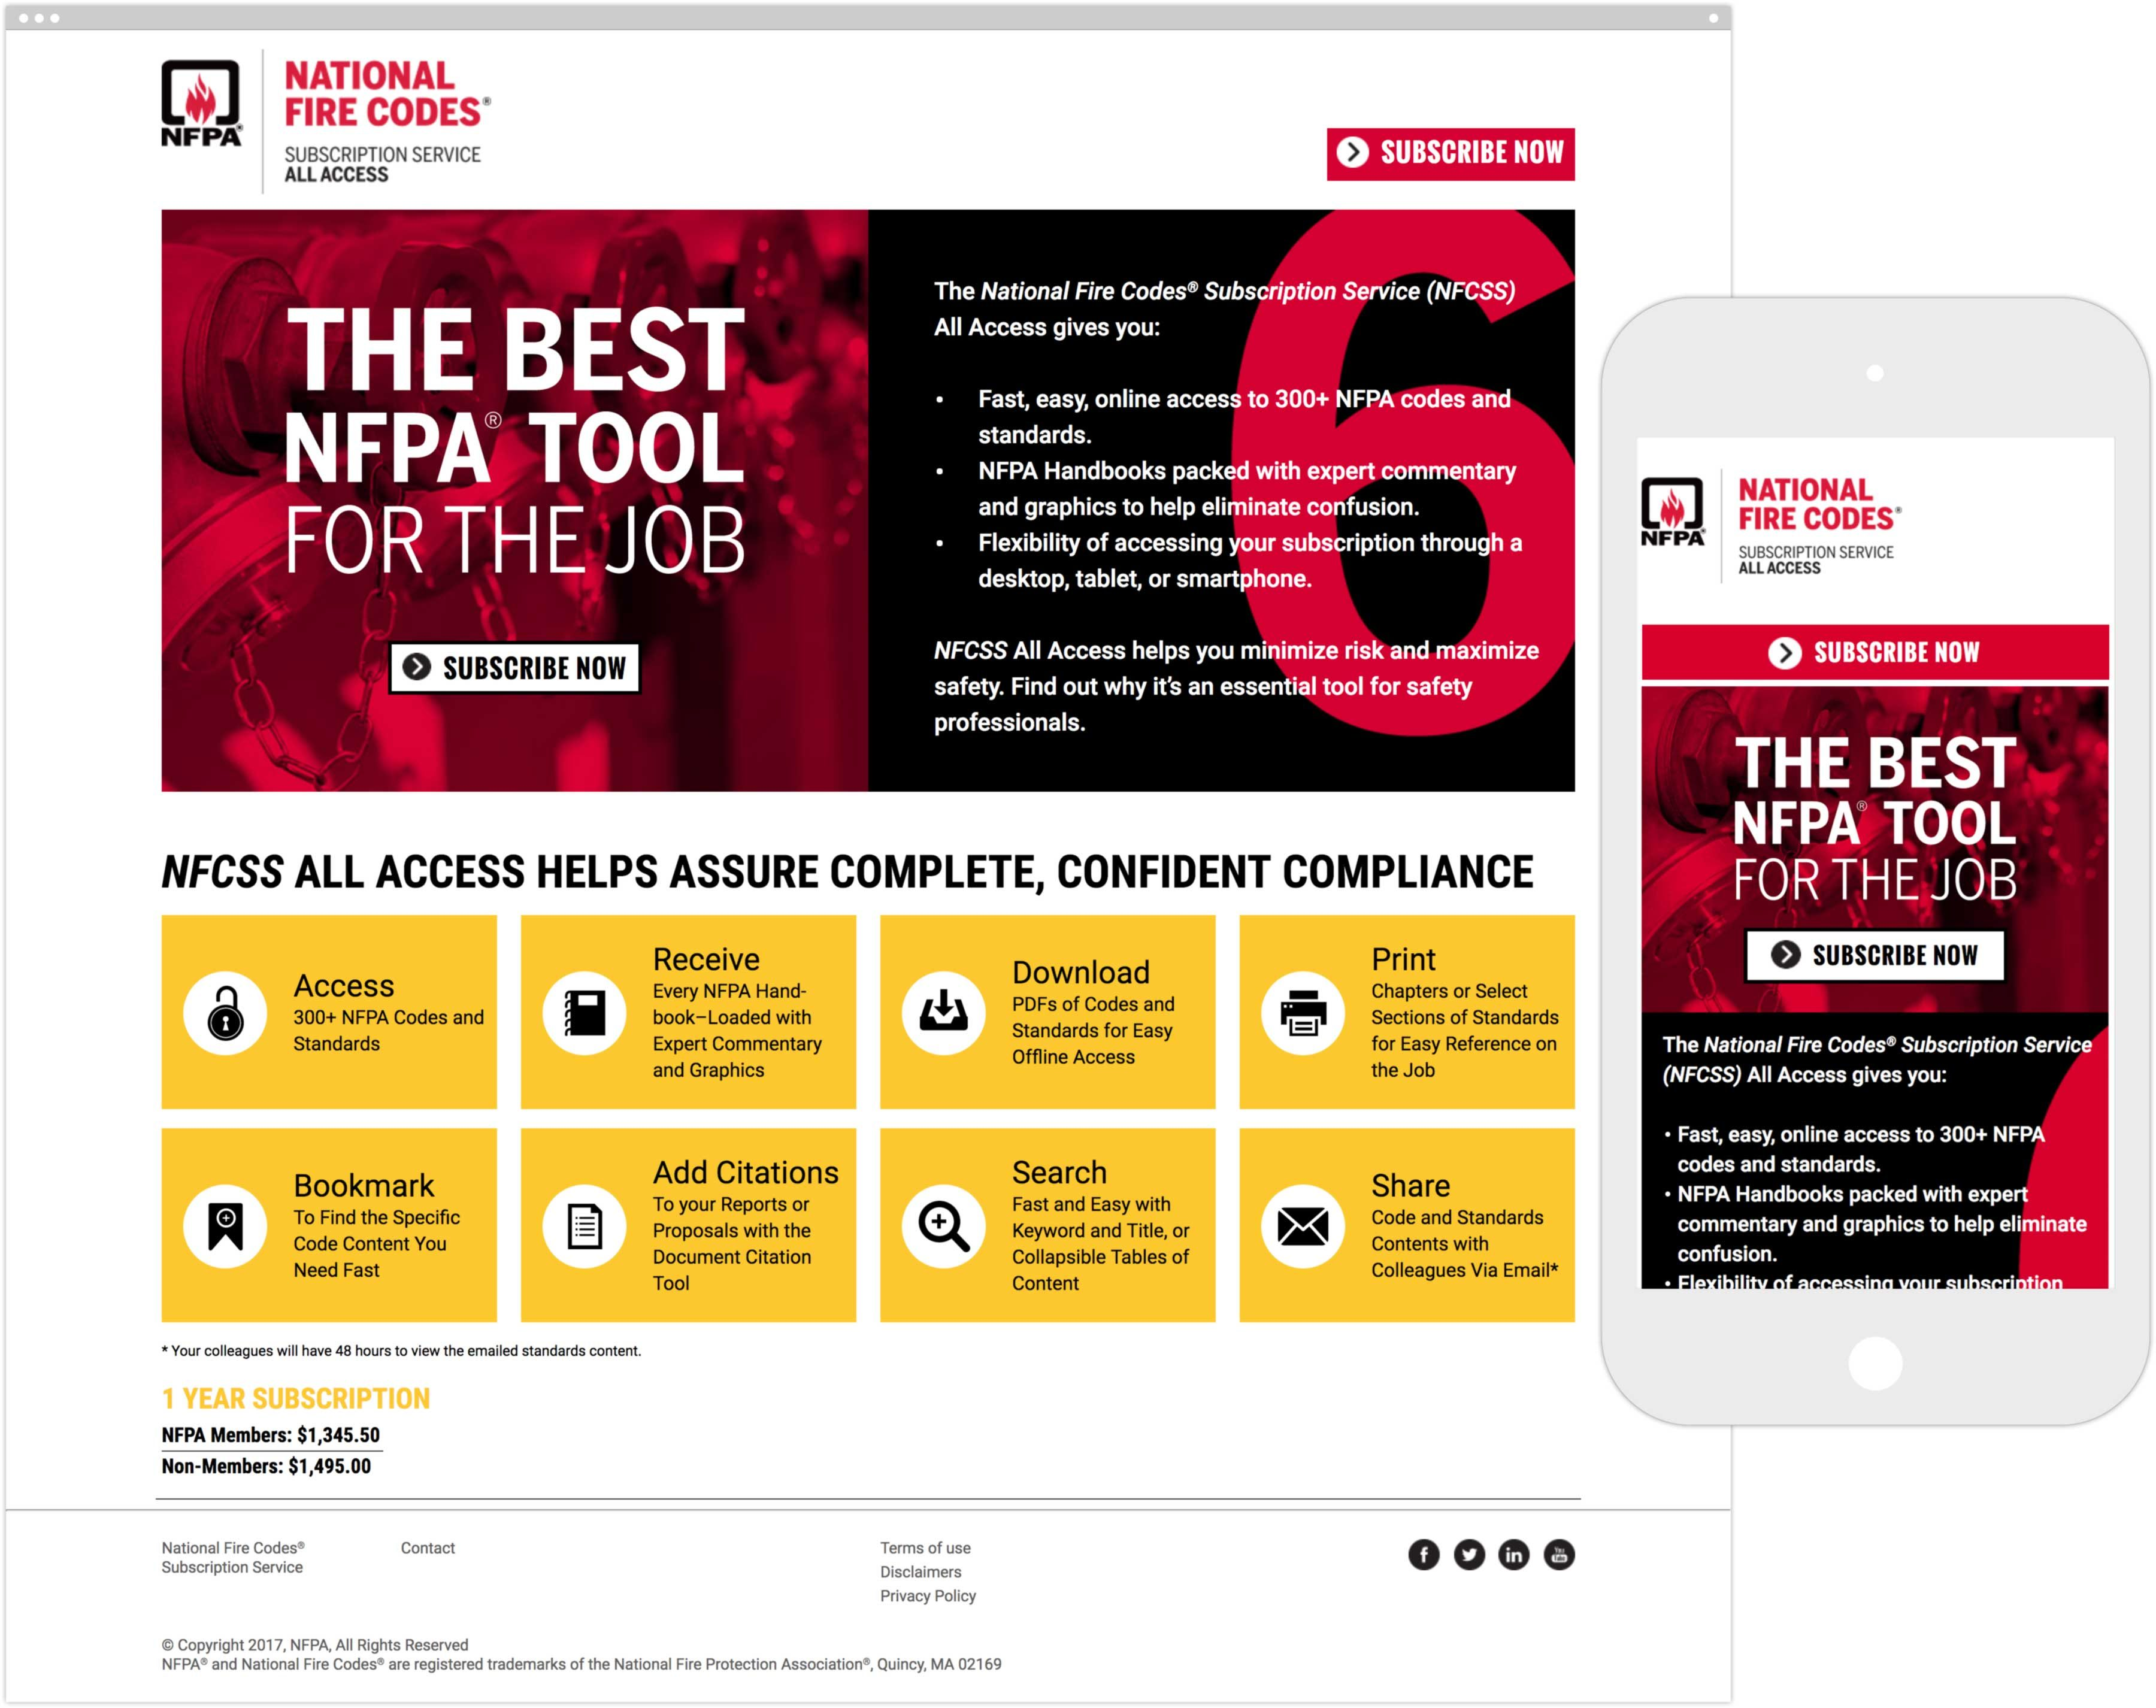 NFPA National Fire Codes Subscription Service homepage on desktop and mobile device